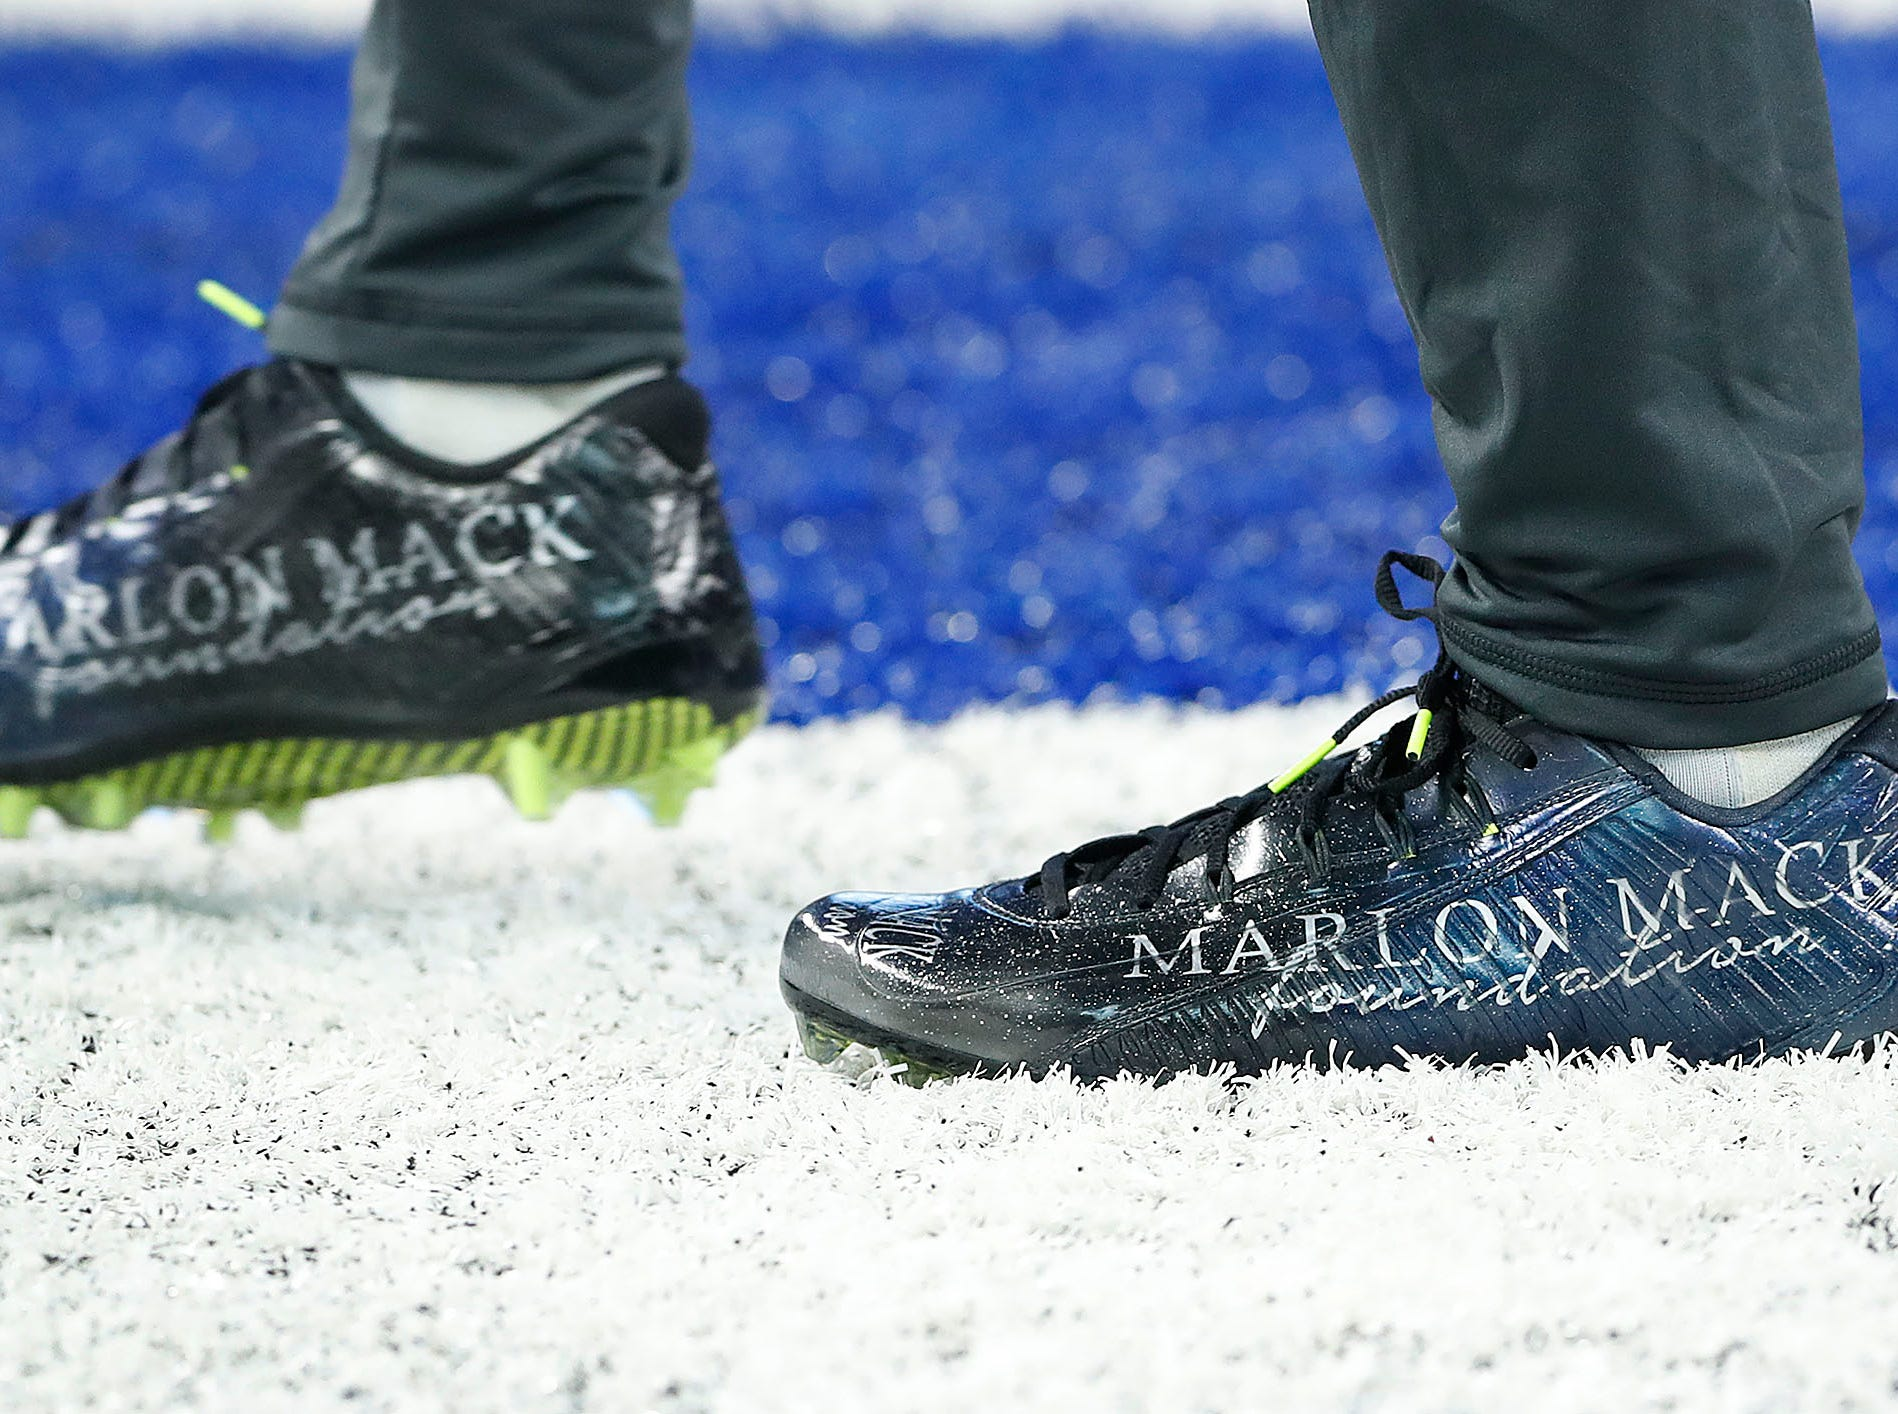 Indianapolis Colts running back Marlon Mack (25) and his My Cleats, My Cause before the start of their game against the Dallas Cowboys at Lucas Oil Stadium on Sunday, Dec. 16, 2018.